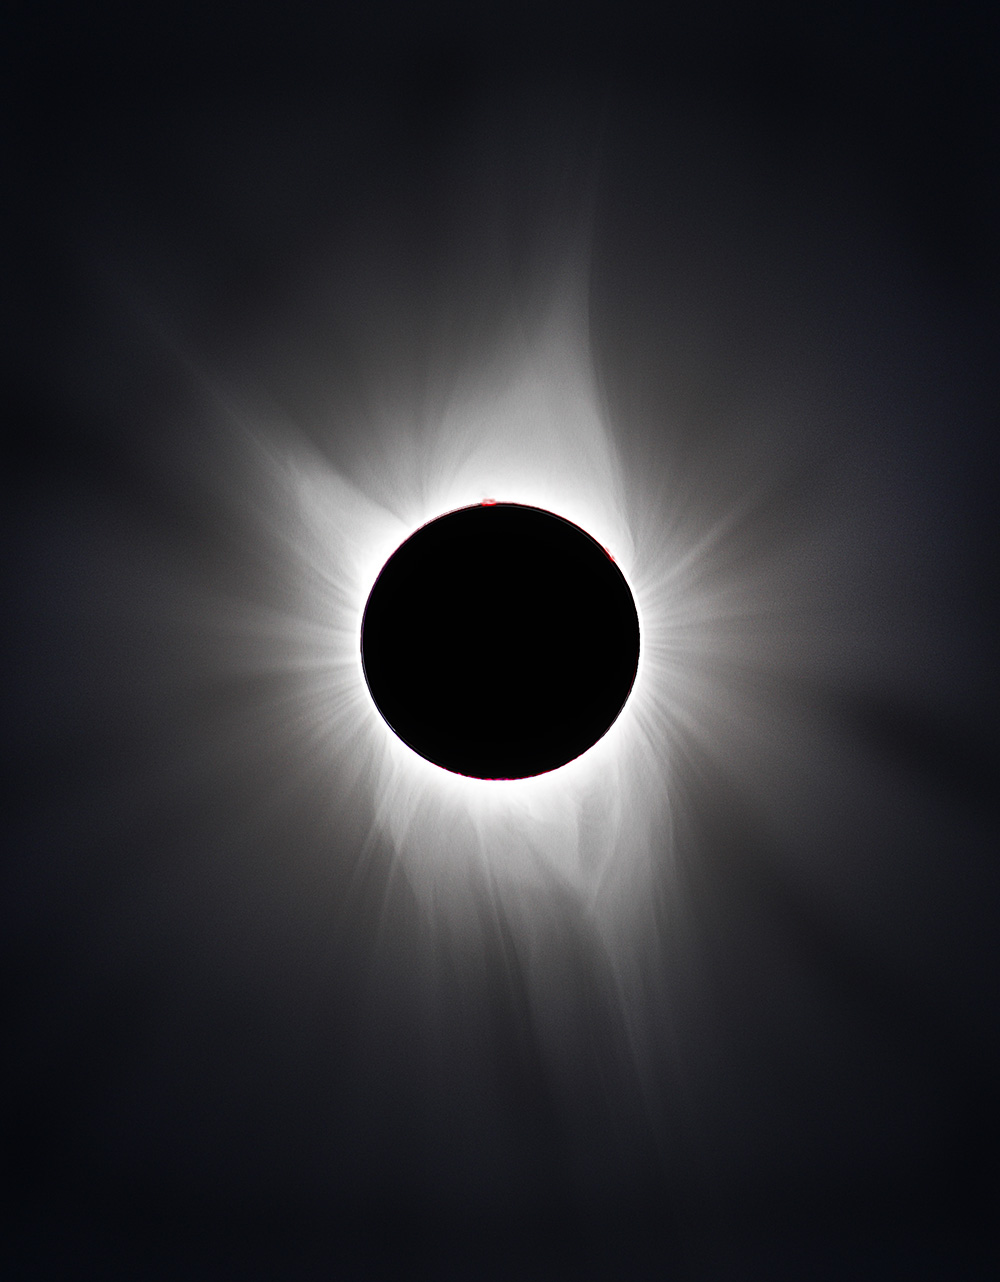 totality merged mean centered 10.5x13 .5 s .jpg